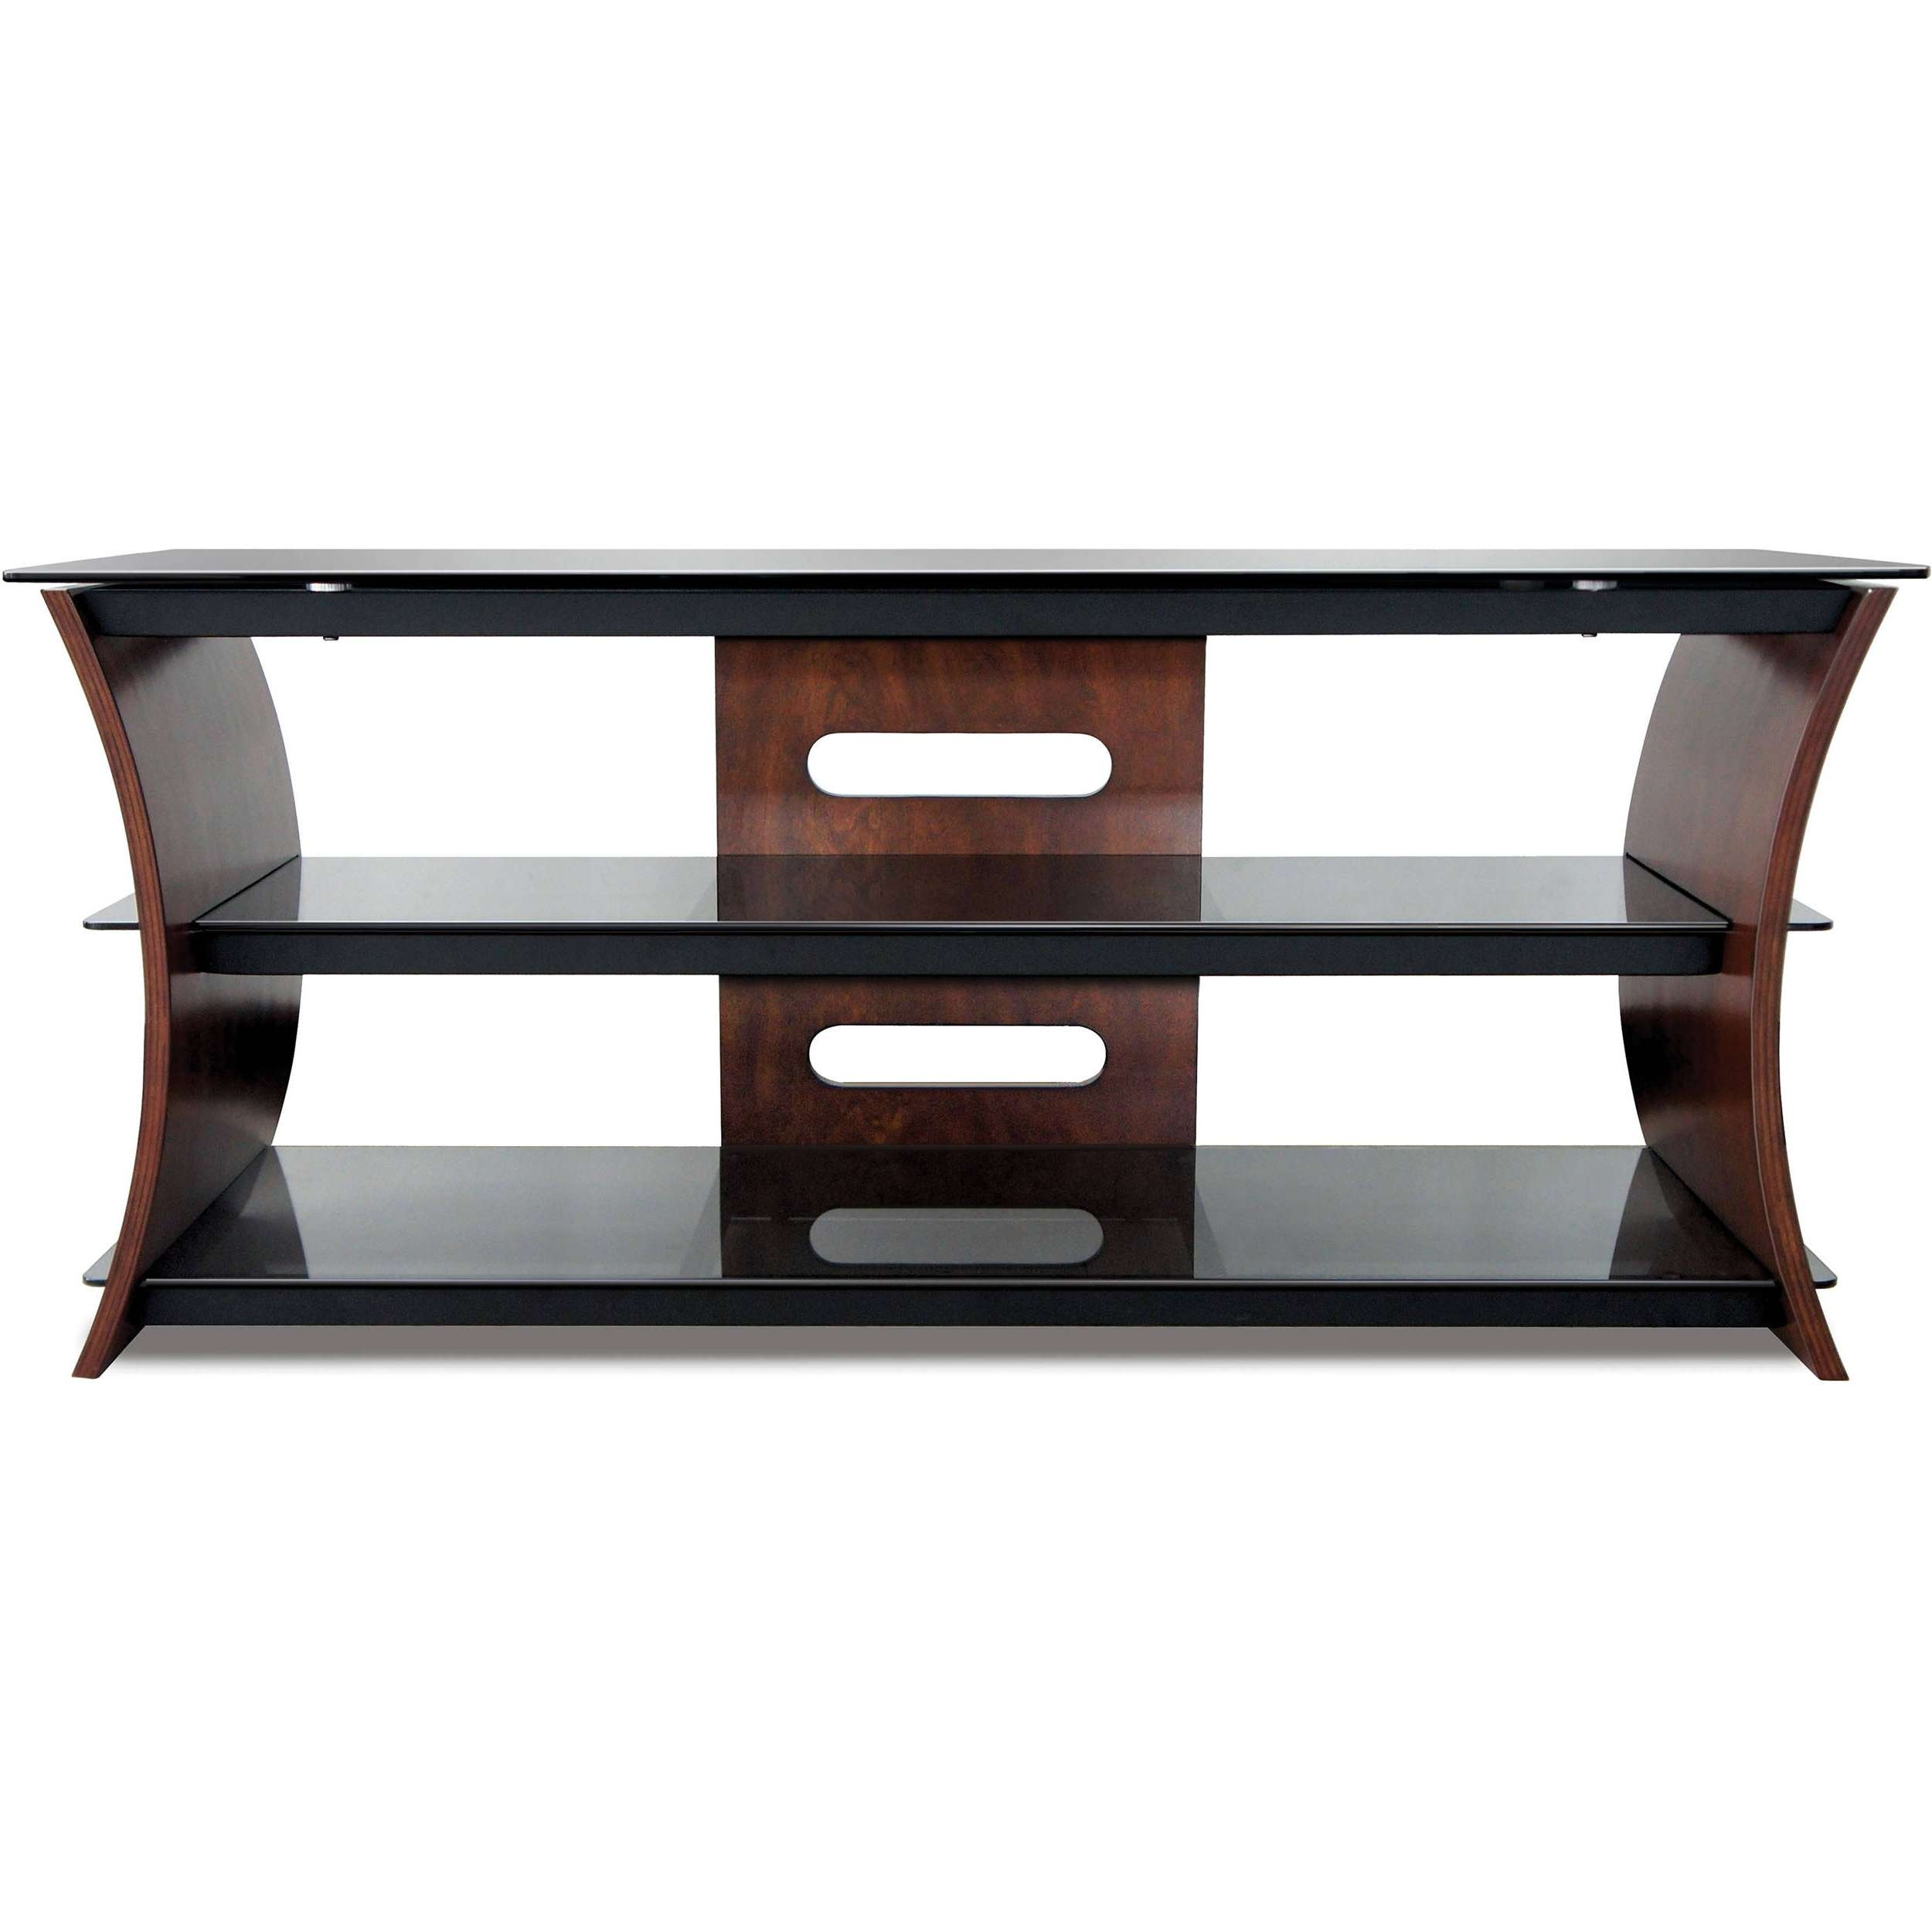 Bell'o Cw356 Curved Wood Tv Stand Cw356 B&h Photo Video For Wooden Tv Stands (View 1 of 15)